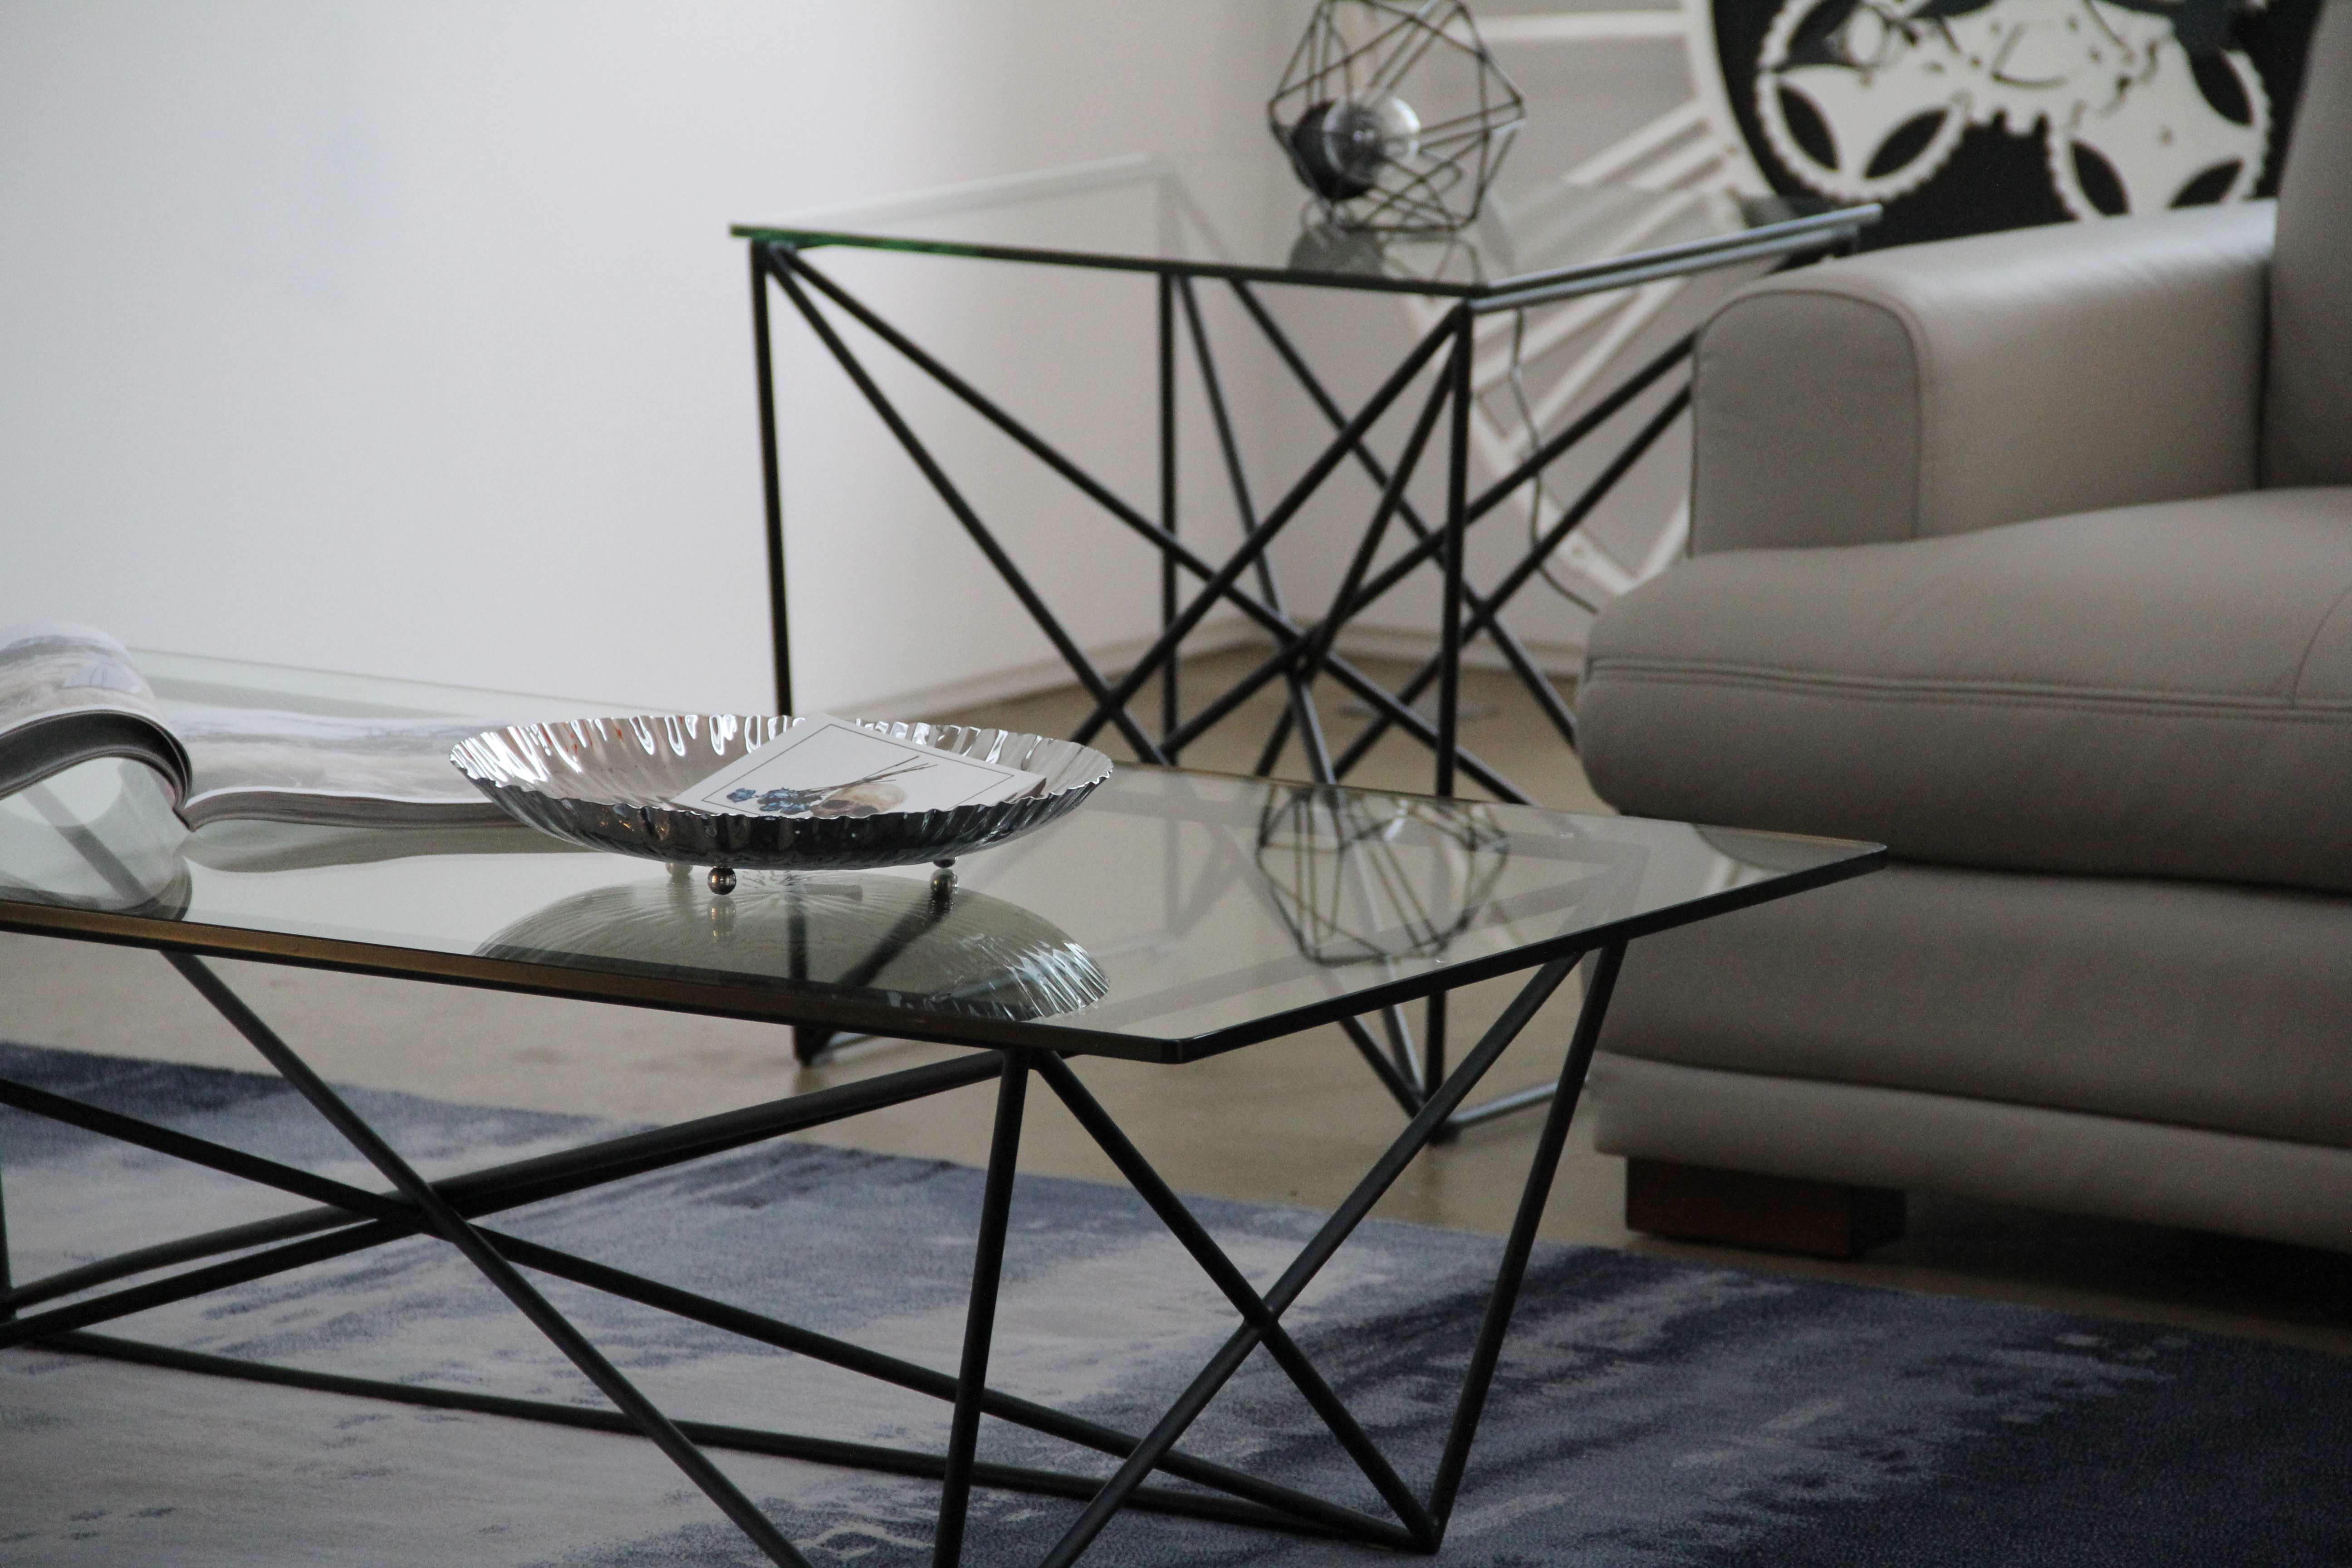 Atlas Lamp and Coffee Tables (2)